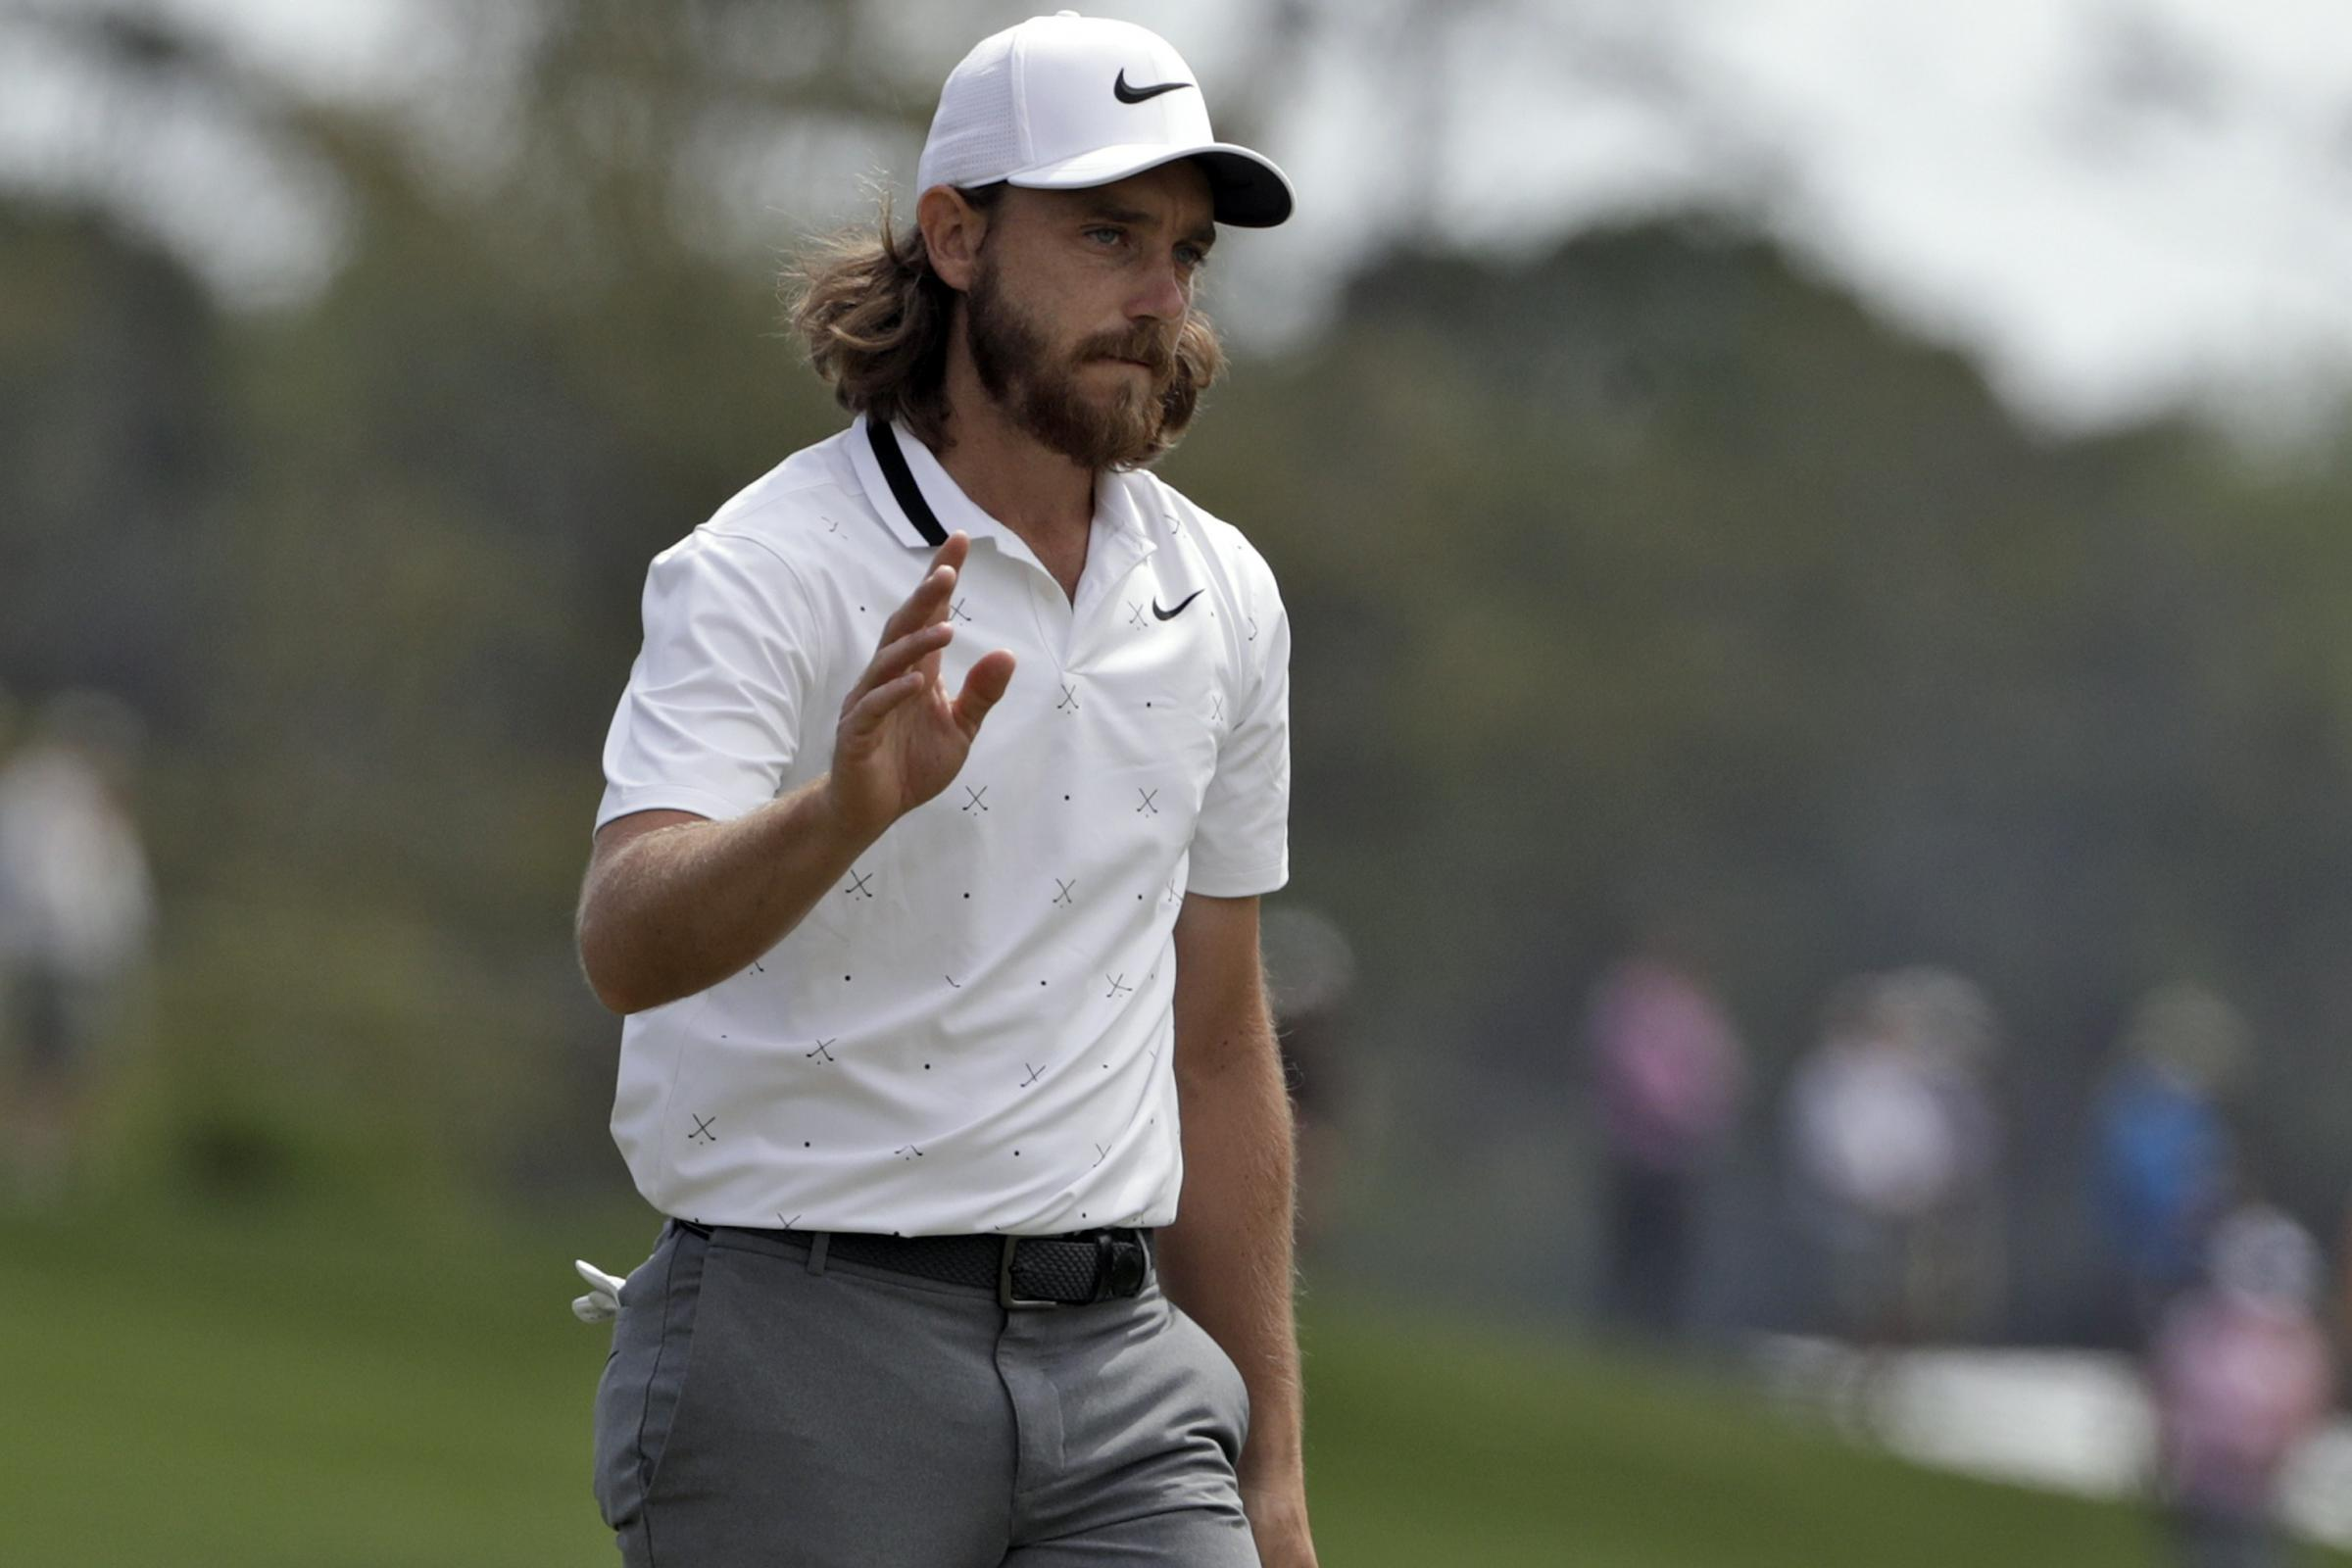 Tommy Fleetwood set the clubhouse target with an opening 65 in the Players Championship